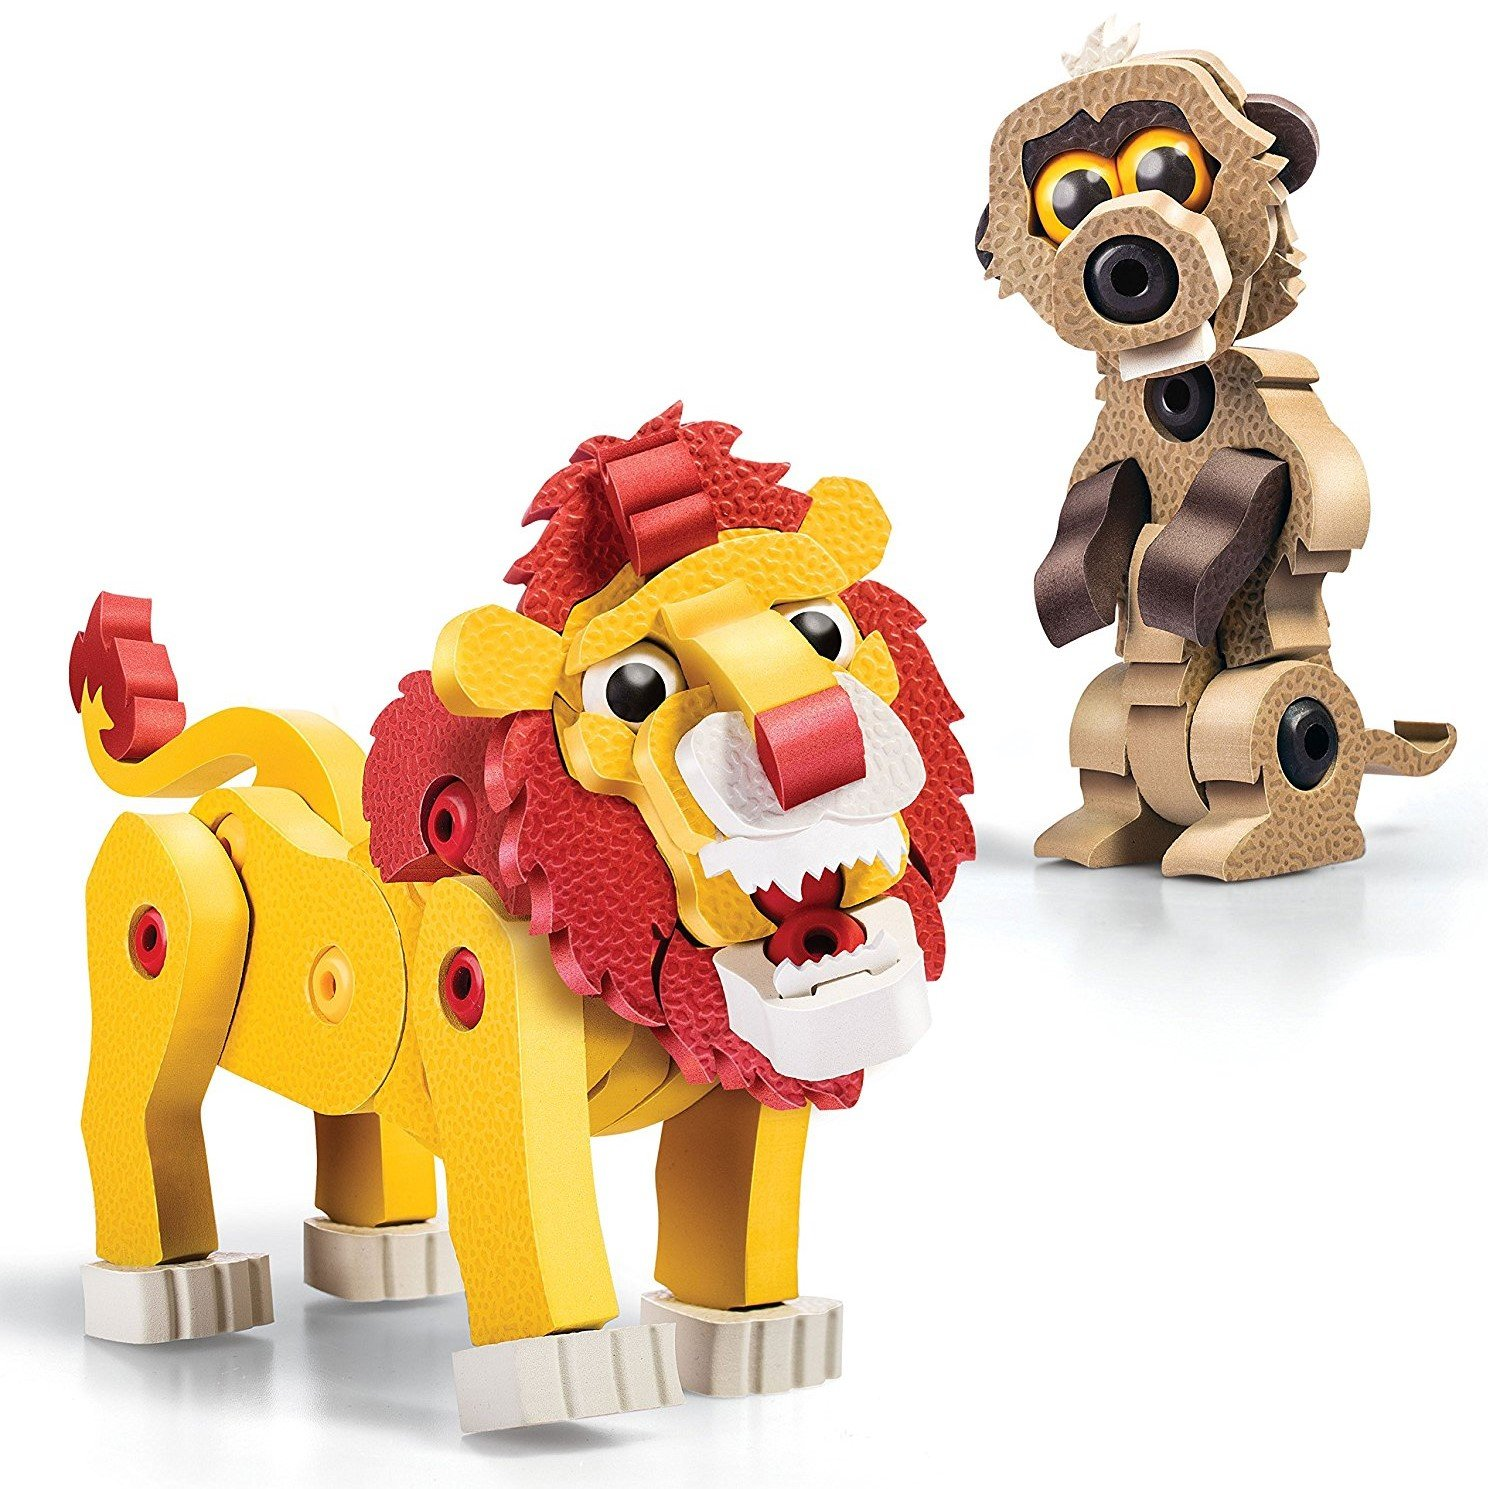 Bloco Toys Lion & The Meerkat Building Kit (100 Pieces)